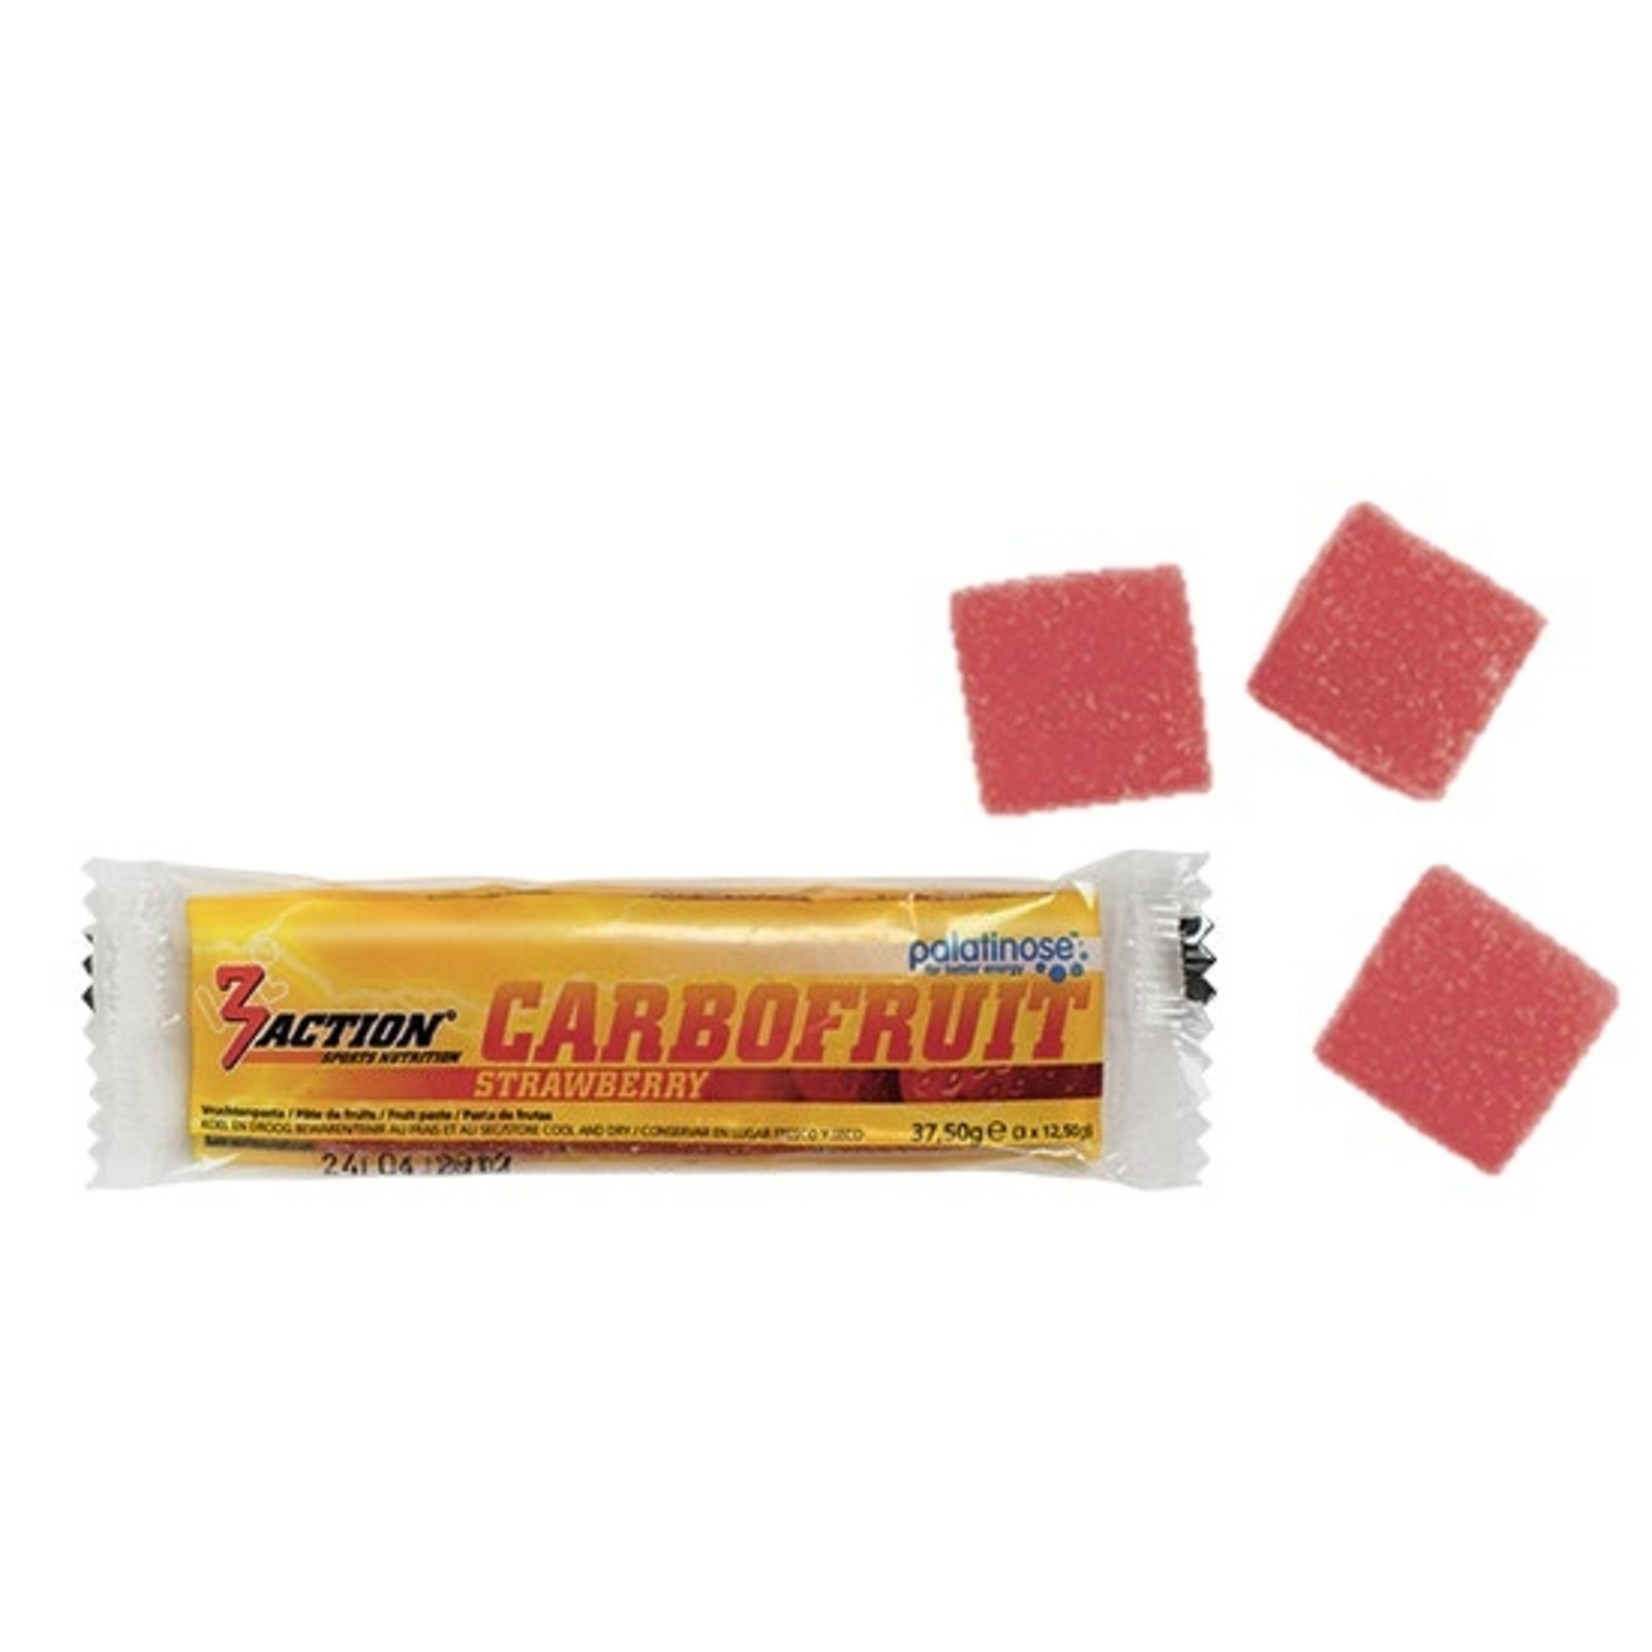 3Action 'Carbofruit (strawberry)'